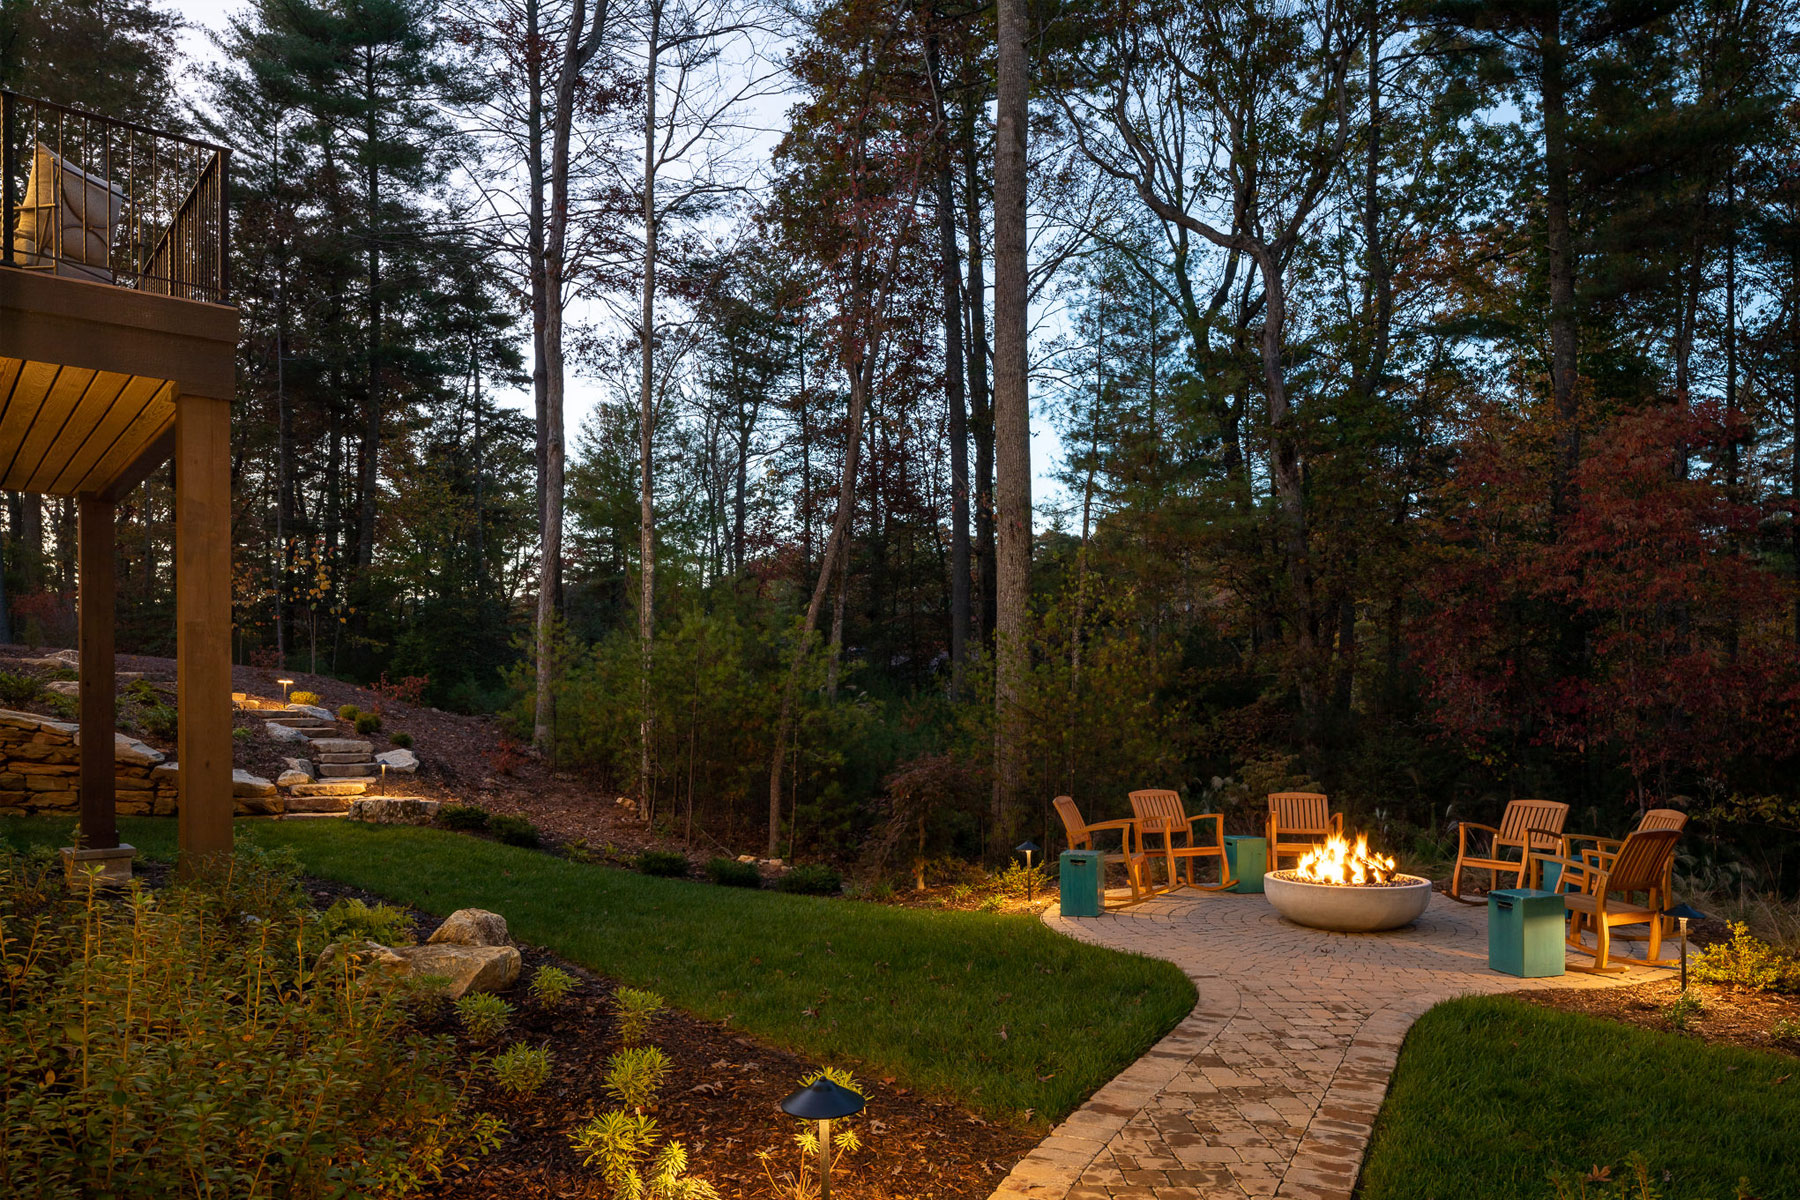 Designing an outdoor entertaining area in Asheville, NC